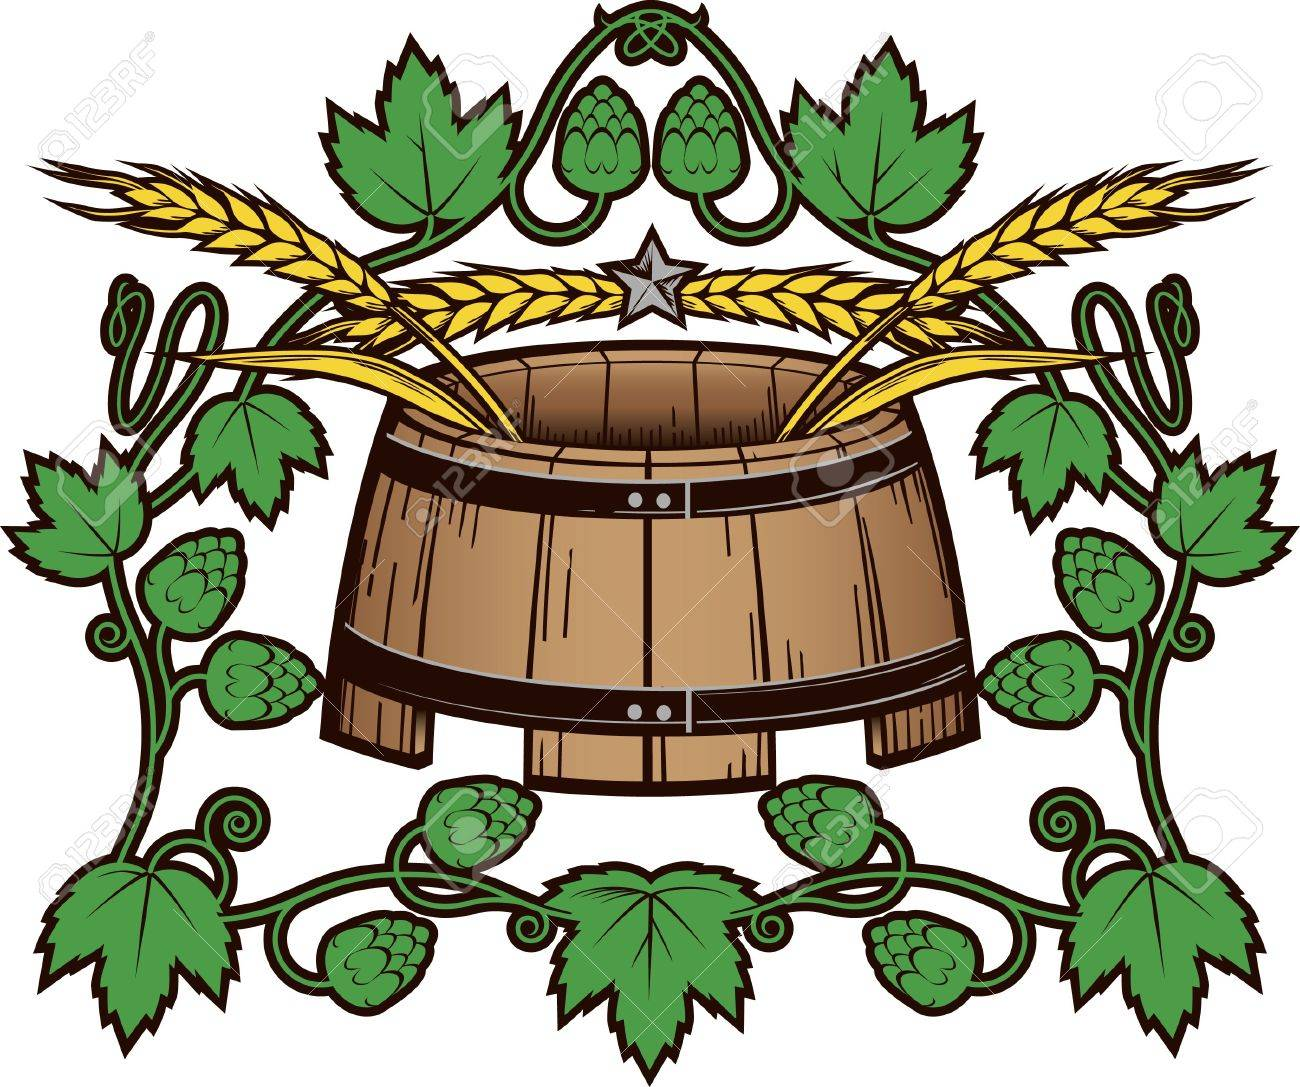 Wheat and Hops Barrel Stock Vector - 13142551